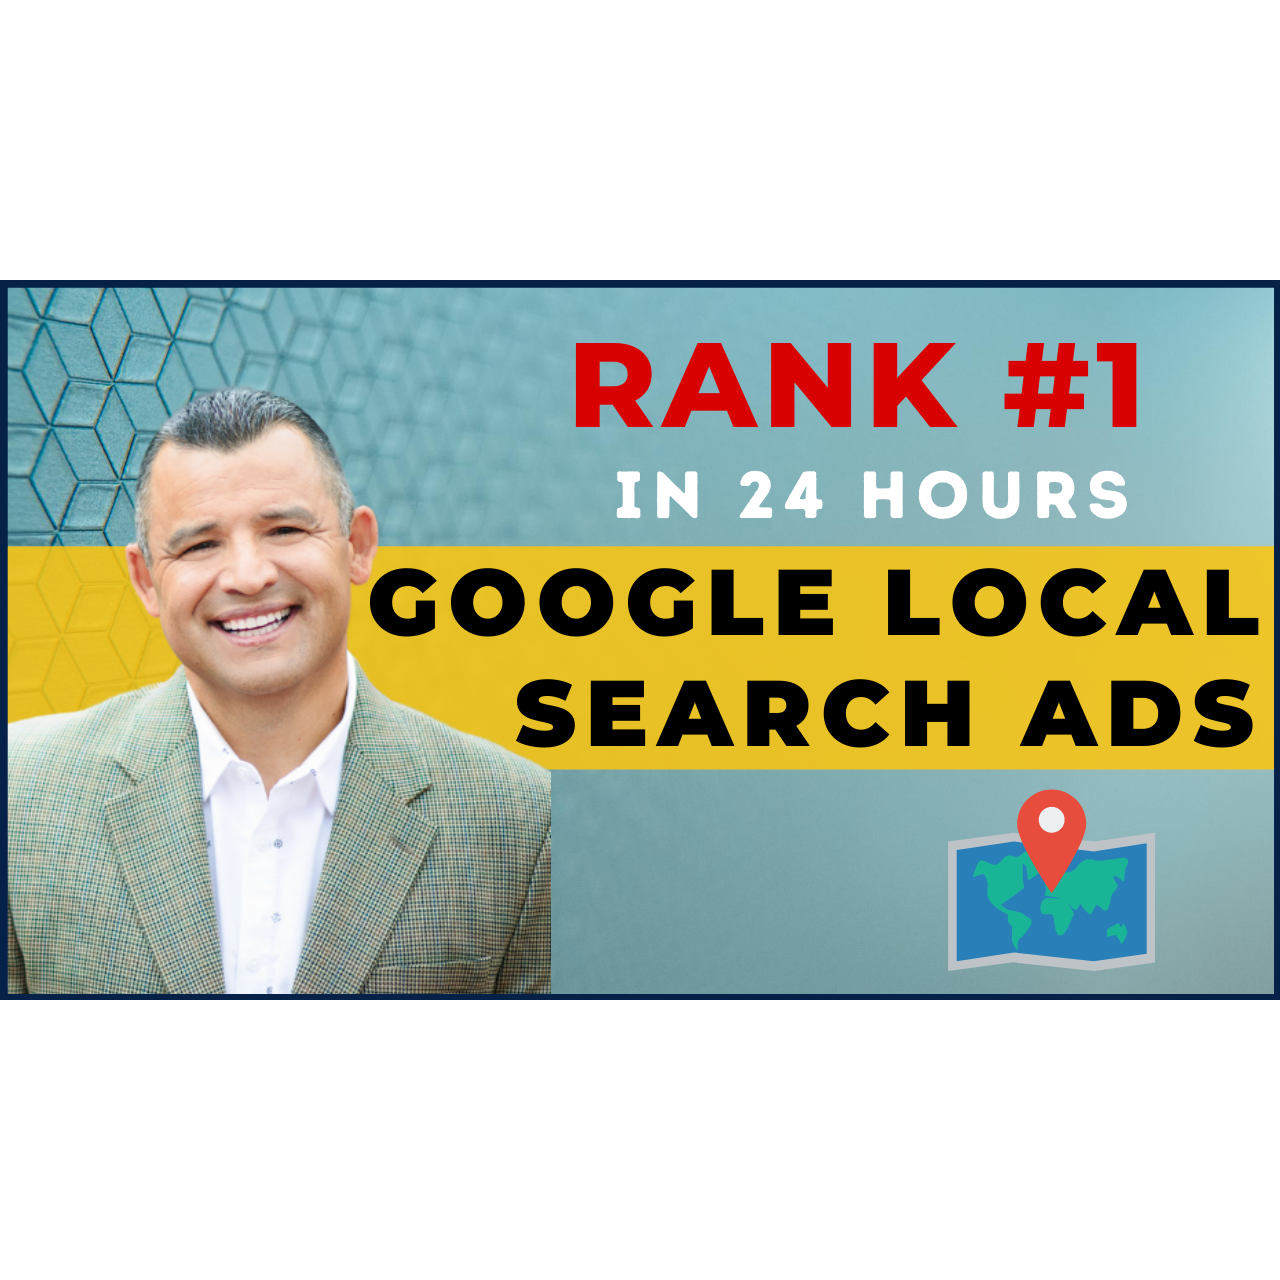 Google Local Search Ads Rank #1 in 24 Hours